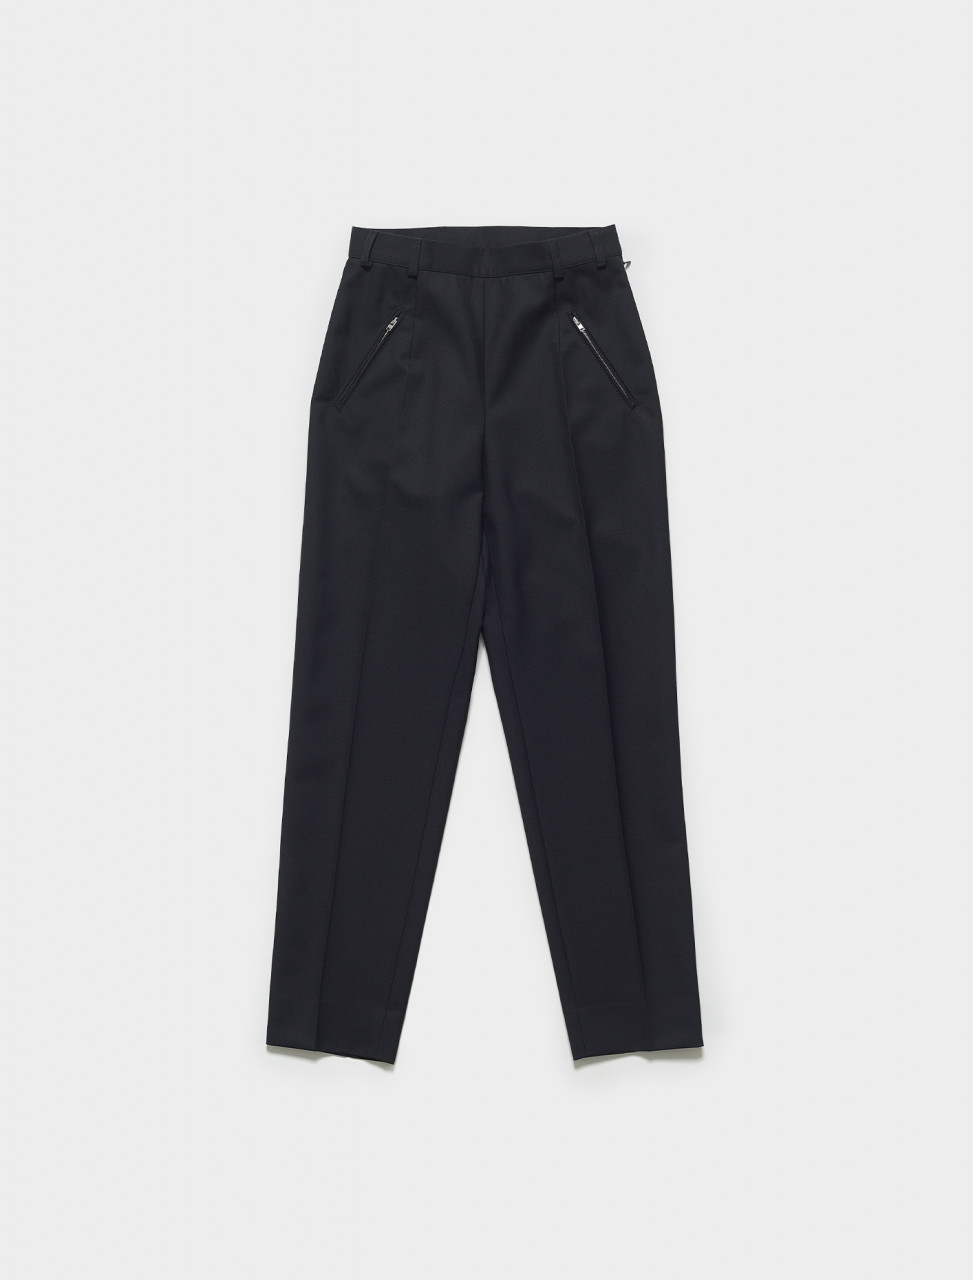 S51KA0530 MAISON MARGIELA WOOL MIX TROUSERS IN BLACK